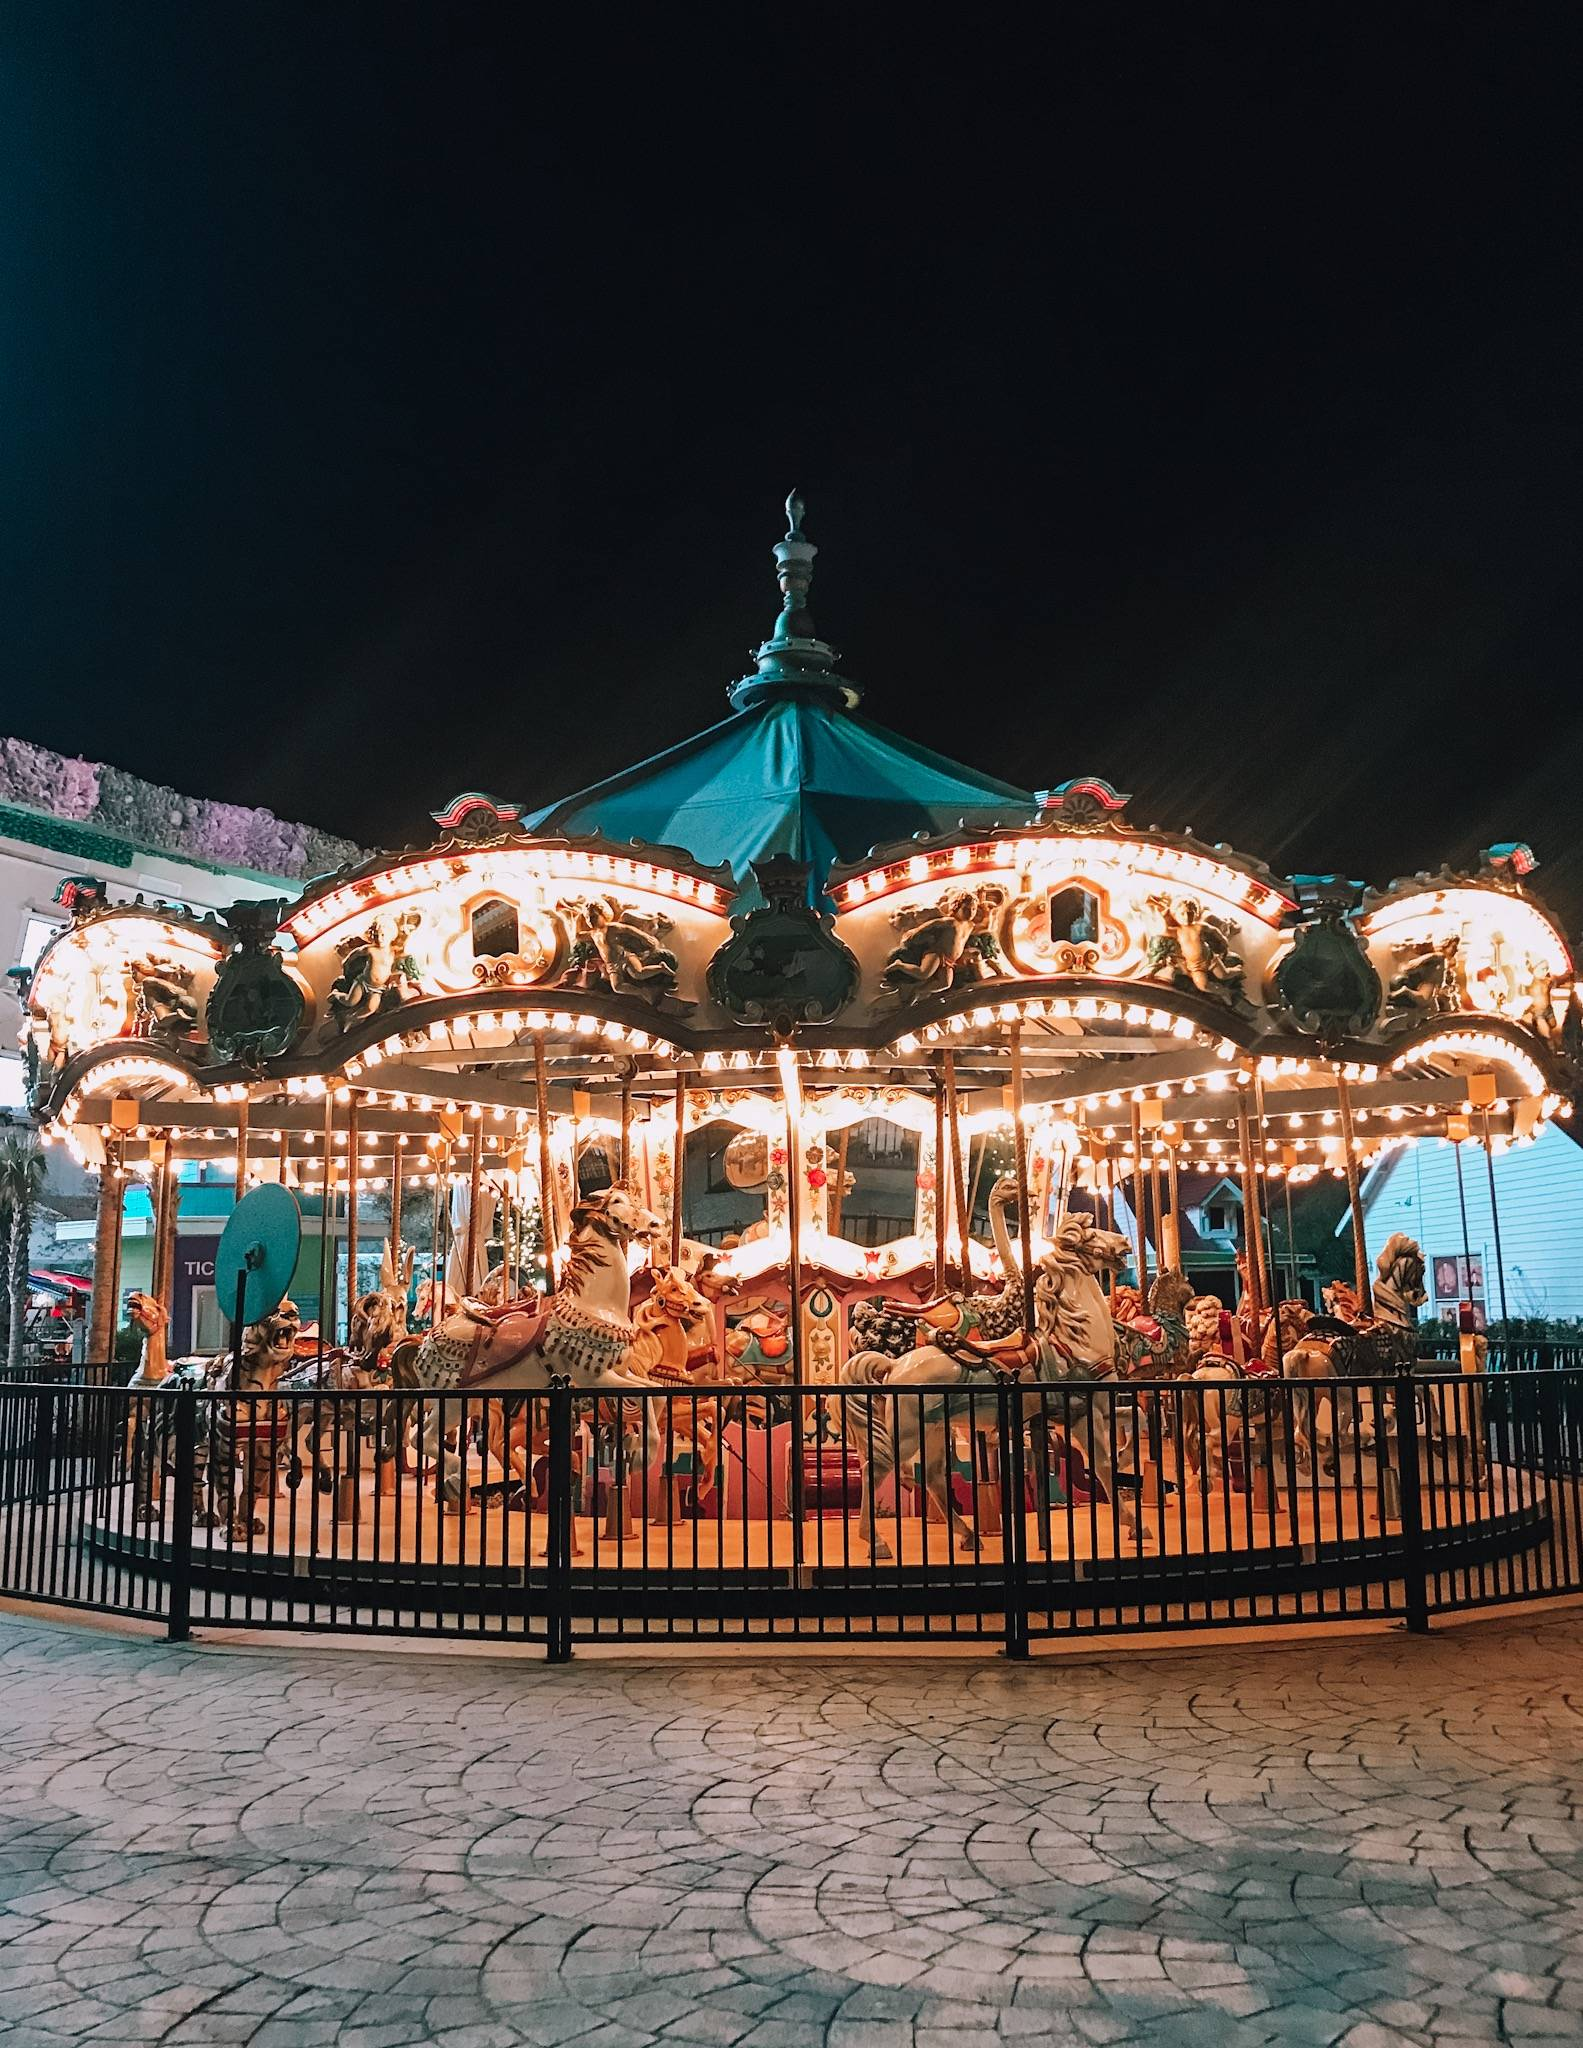 The best things to do in Myrtle Beach- including a trip to Broadway at the Beach. Find out where to eat, shop, and what to see in Myrtle Beach including a stroll at night at Broadway at the beach.